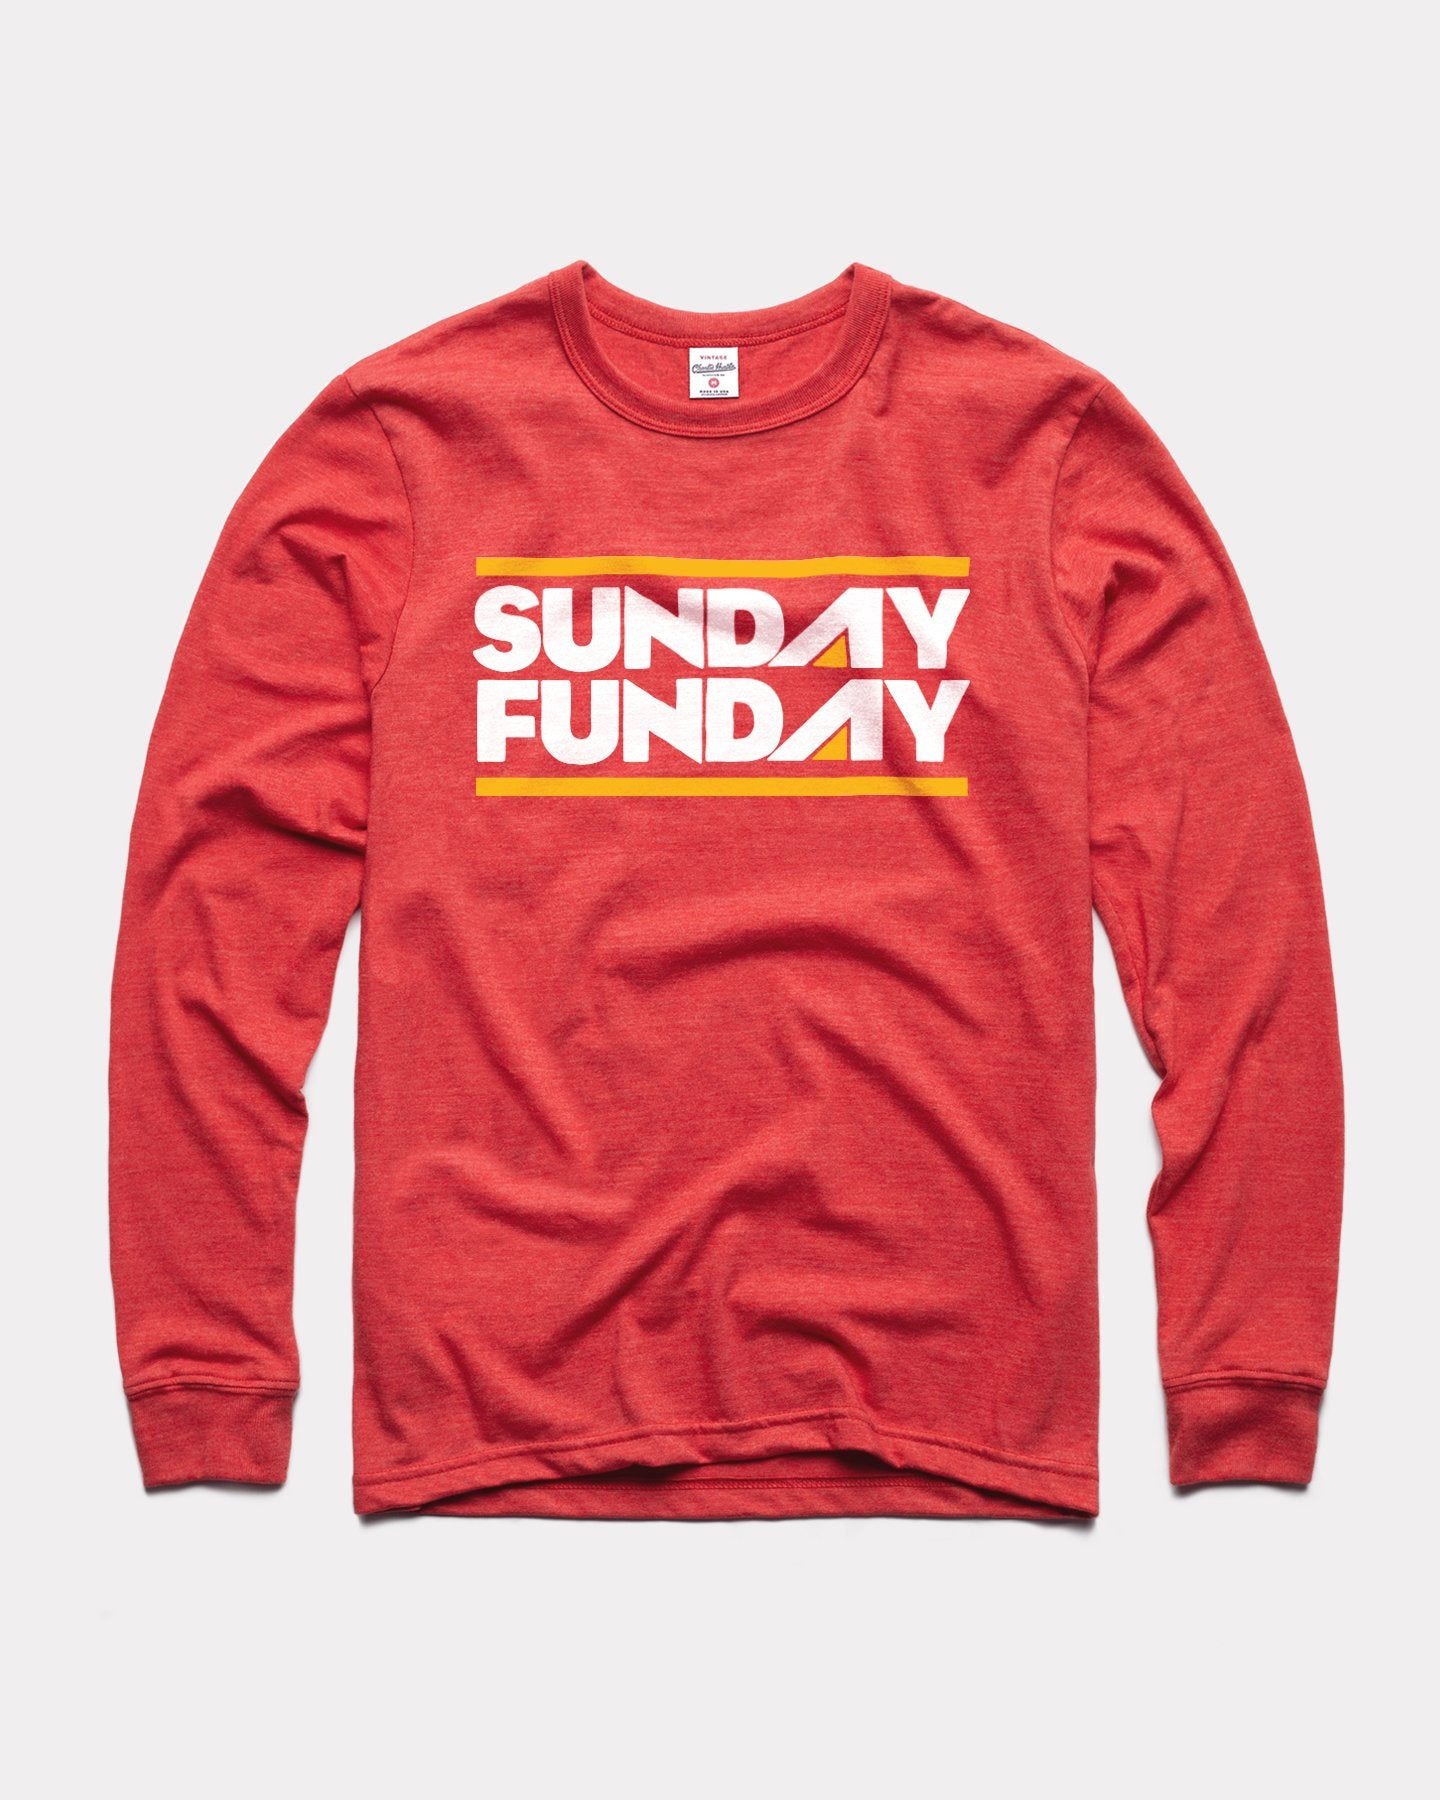 Red Sunday Funday Long Sleeve Vintage T-Shirt